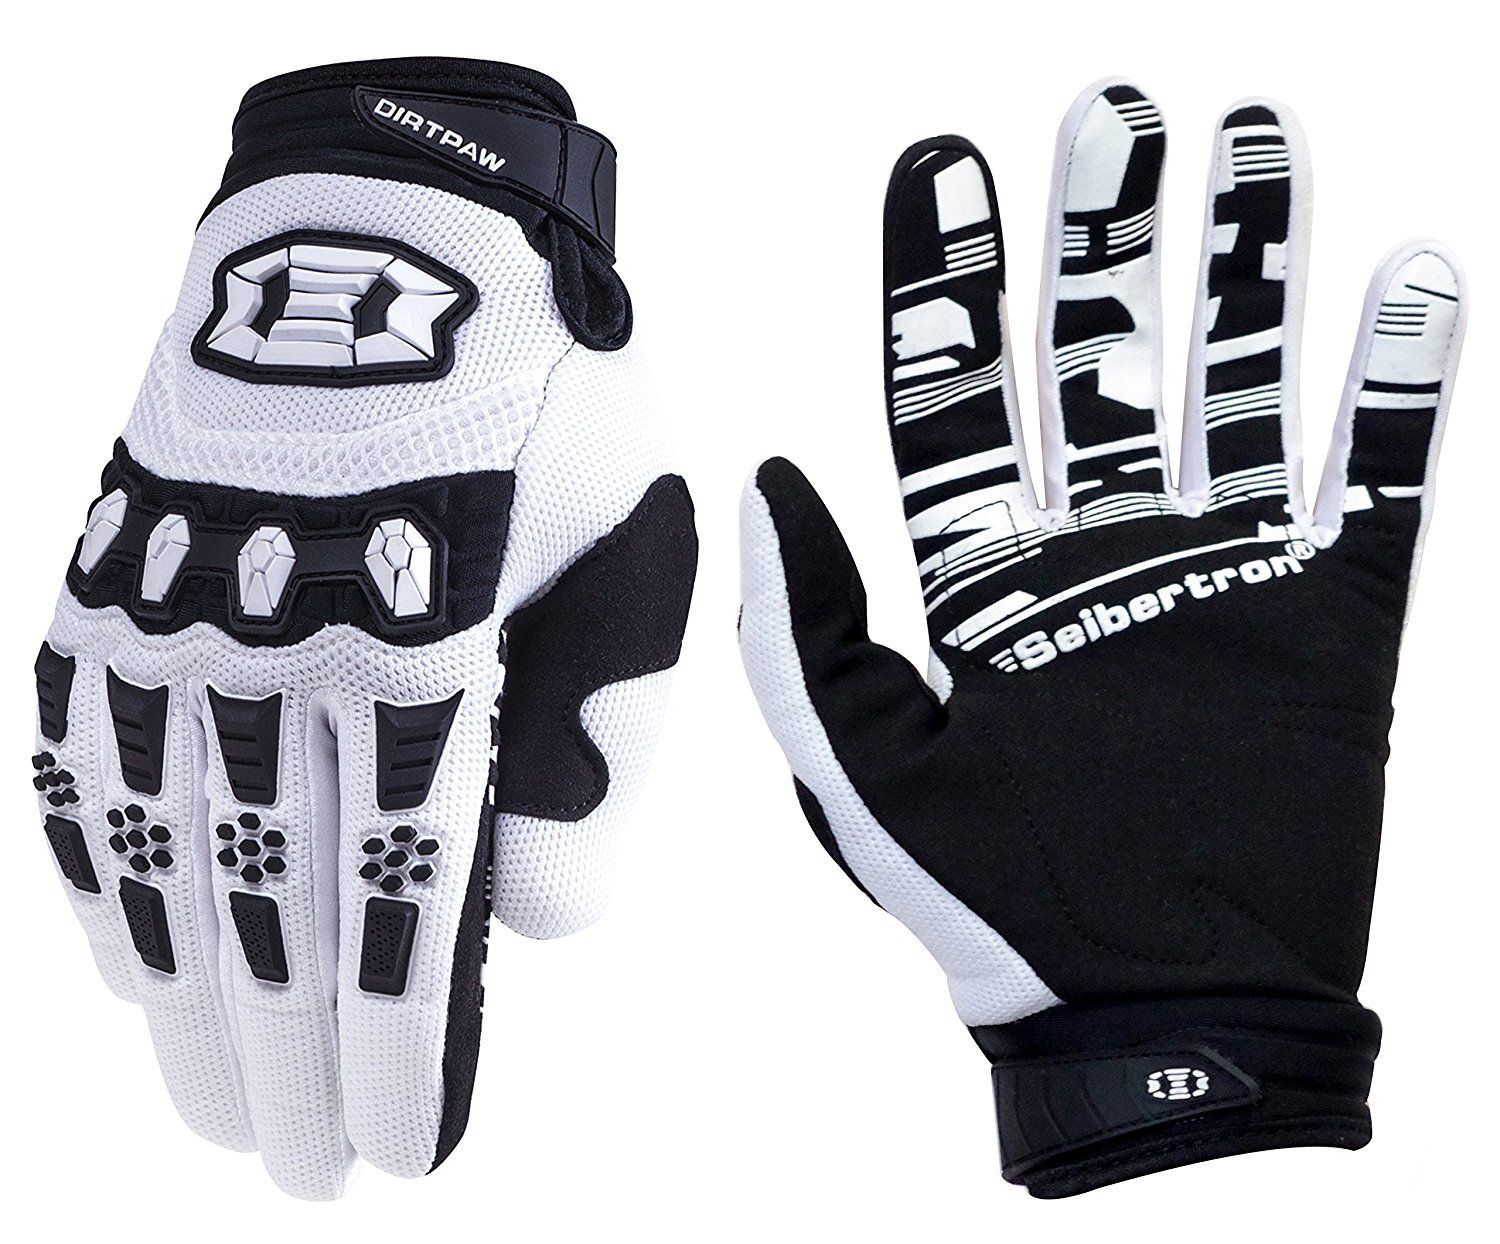 Seibertron Dirtpaw Unisex BMX MX ATV MTB Racing Mountain Bike Bicycle Cycling Off-Road//Dirt Bike Gloves Road Racing Motorcycle Motocross Sports Gloves Touch Recognition Full Finger Glove